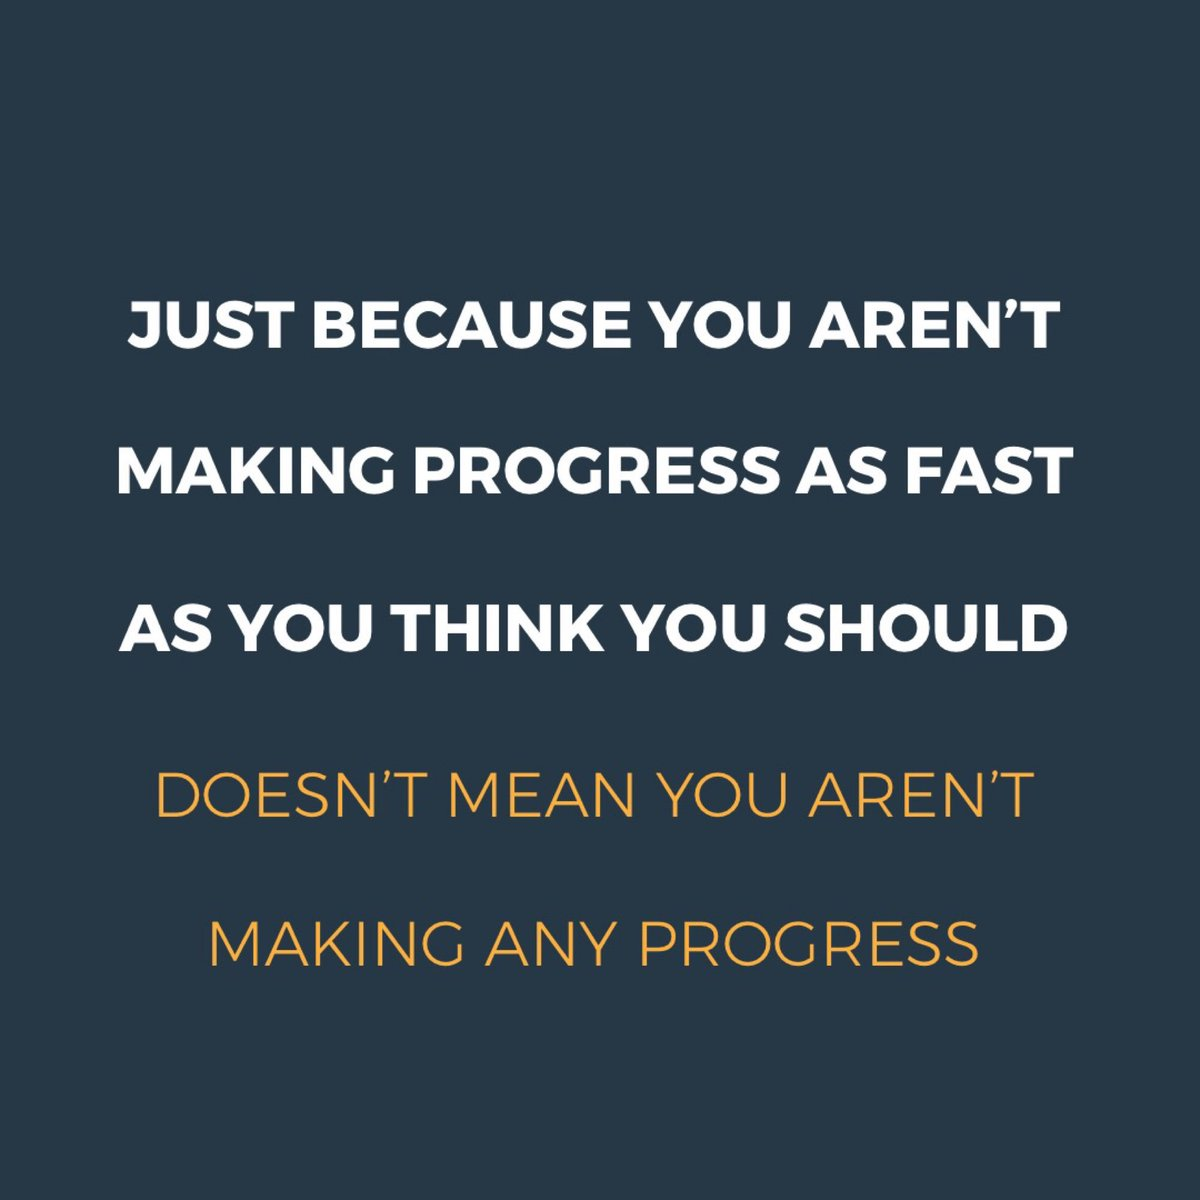 Keep going 👊   Progress looks different for everyone. It takes time and many many small changes to get to where you want to go. Don't quit because you aren't where you want to be. Keep going. You will get there. #weightloss #Dieting #goals2019 #fitnessmotivation